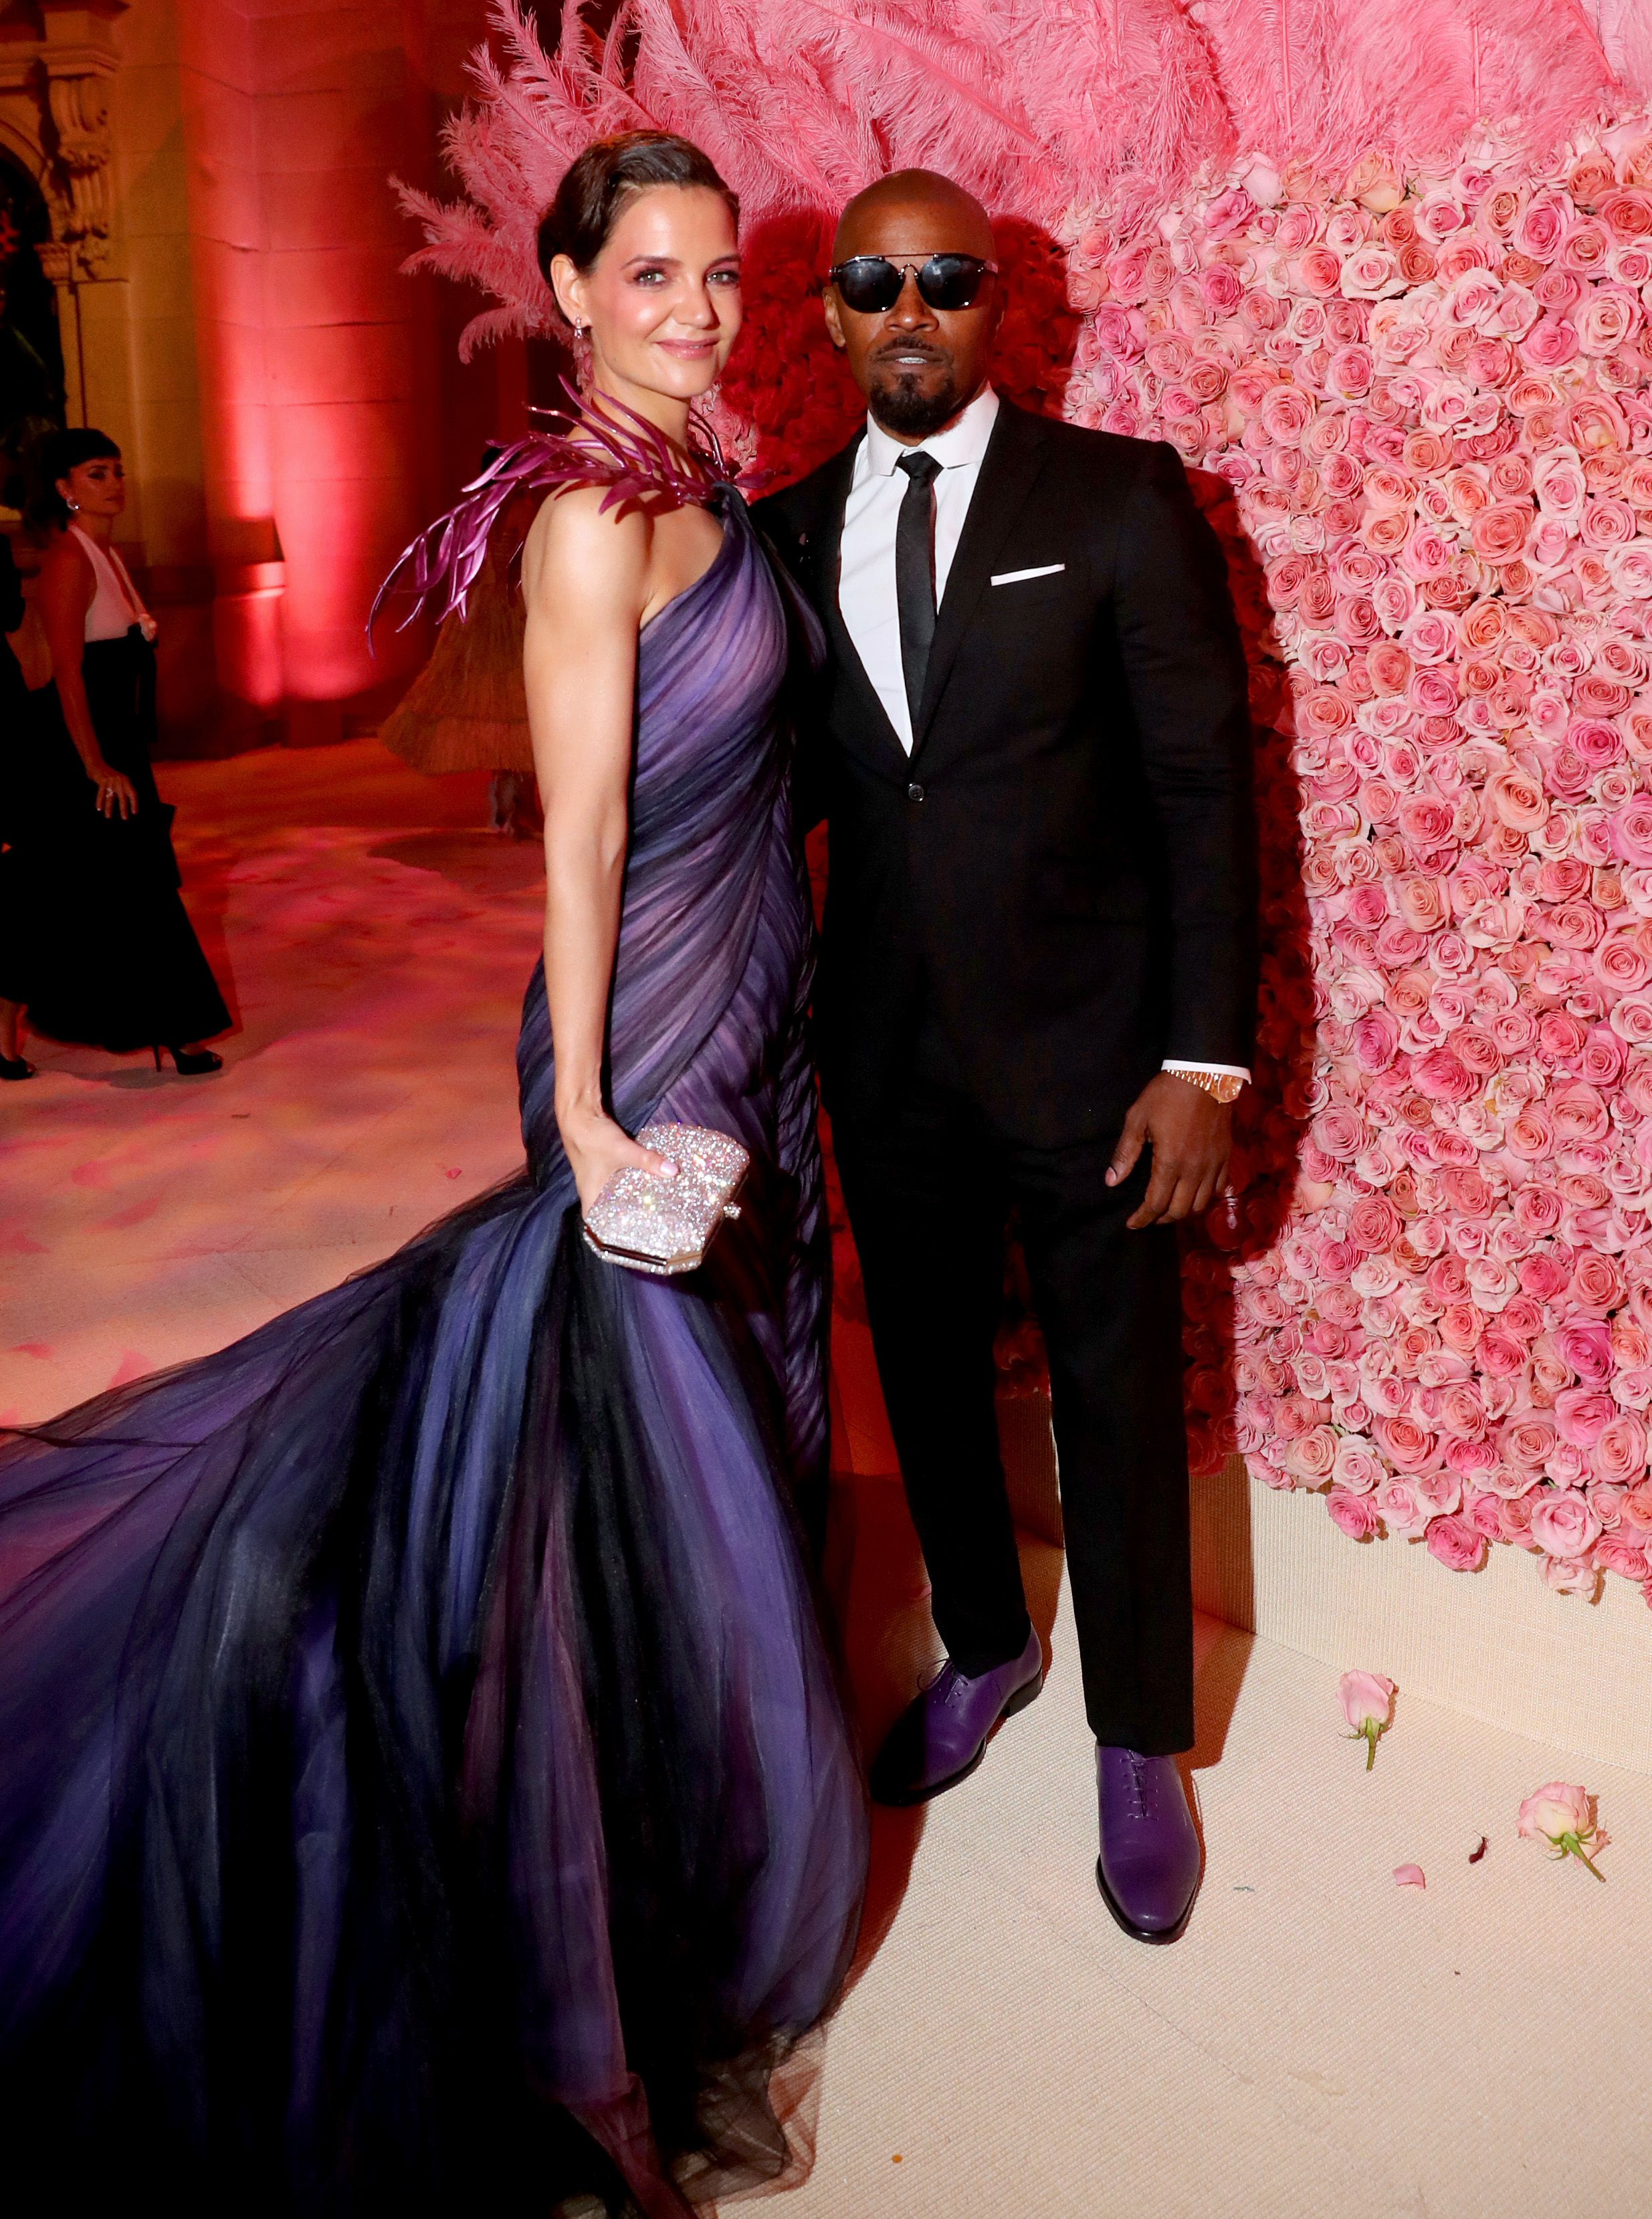 Jamie Foxx And Katie Holmes Appear At 2019 Met Gala Together Marking First Major Event As A Couple - Fame10